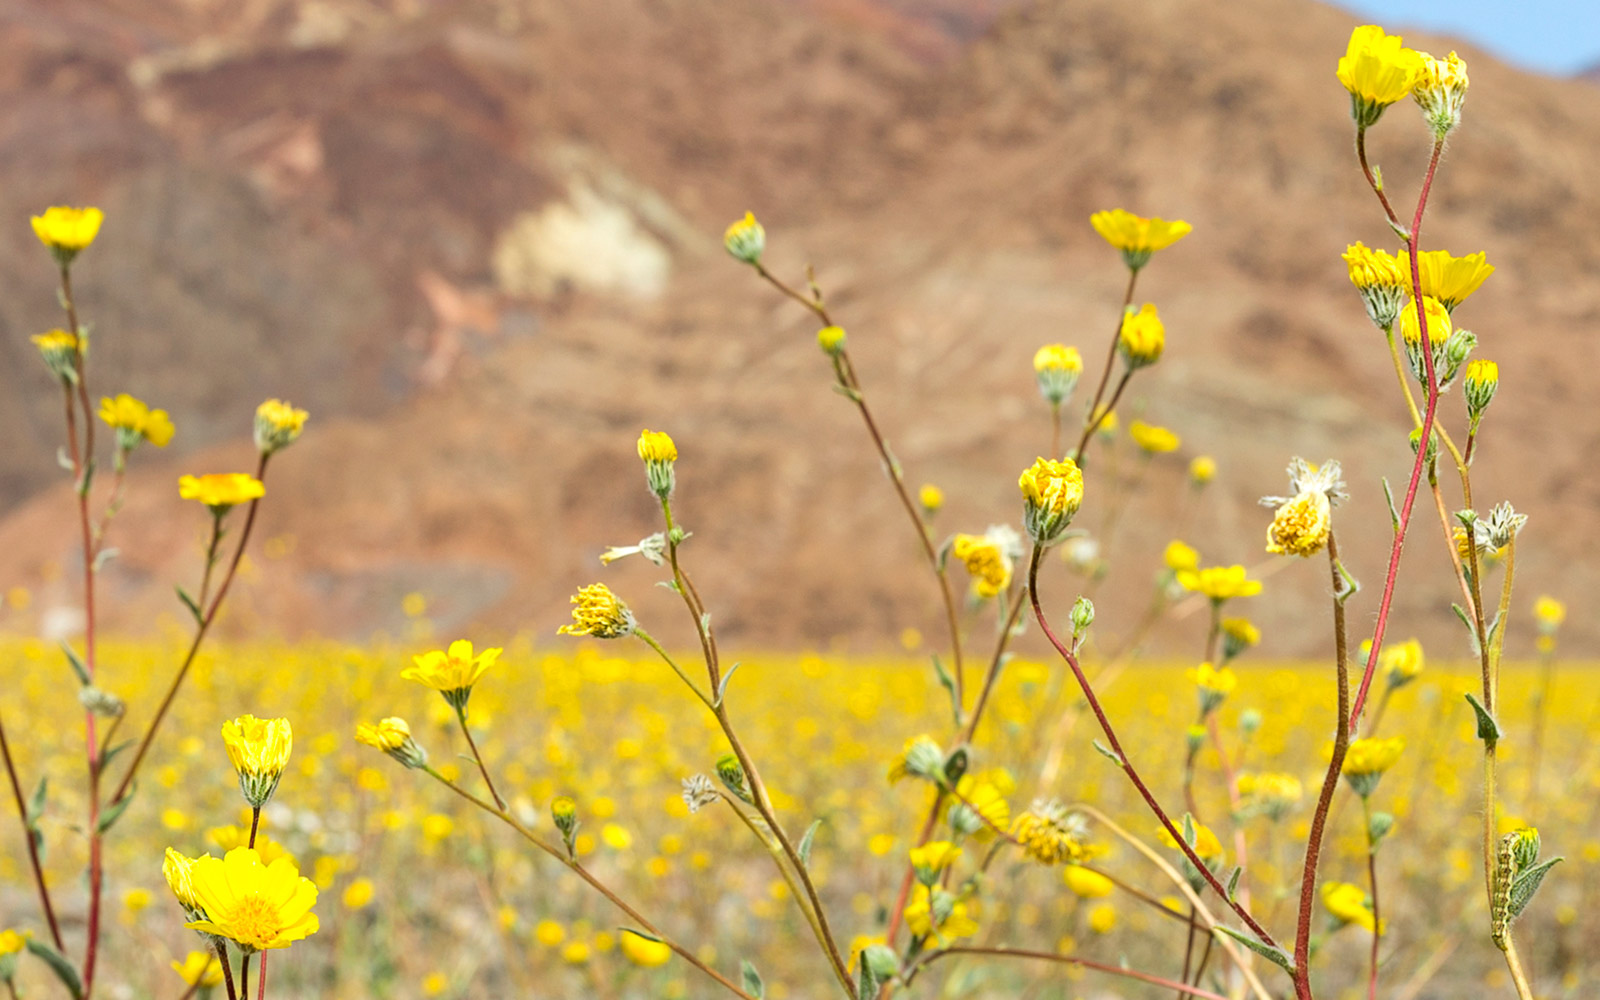 California's Winter Rains Could Mean Great Desert Wildflowers